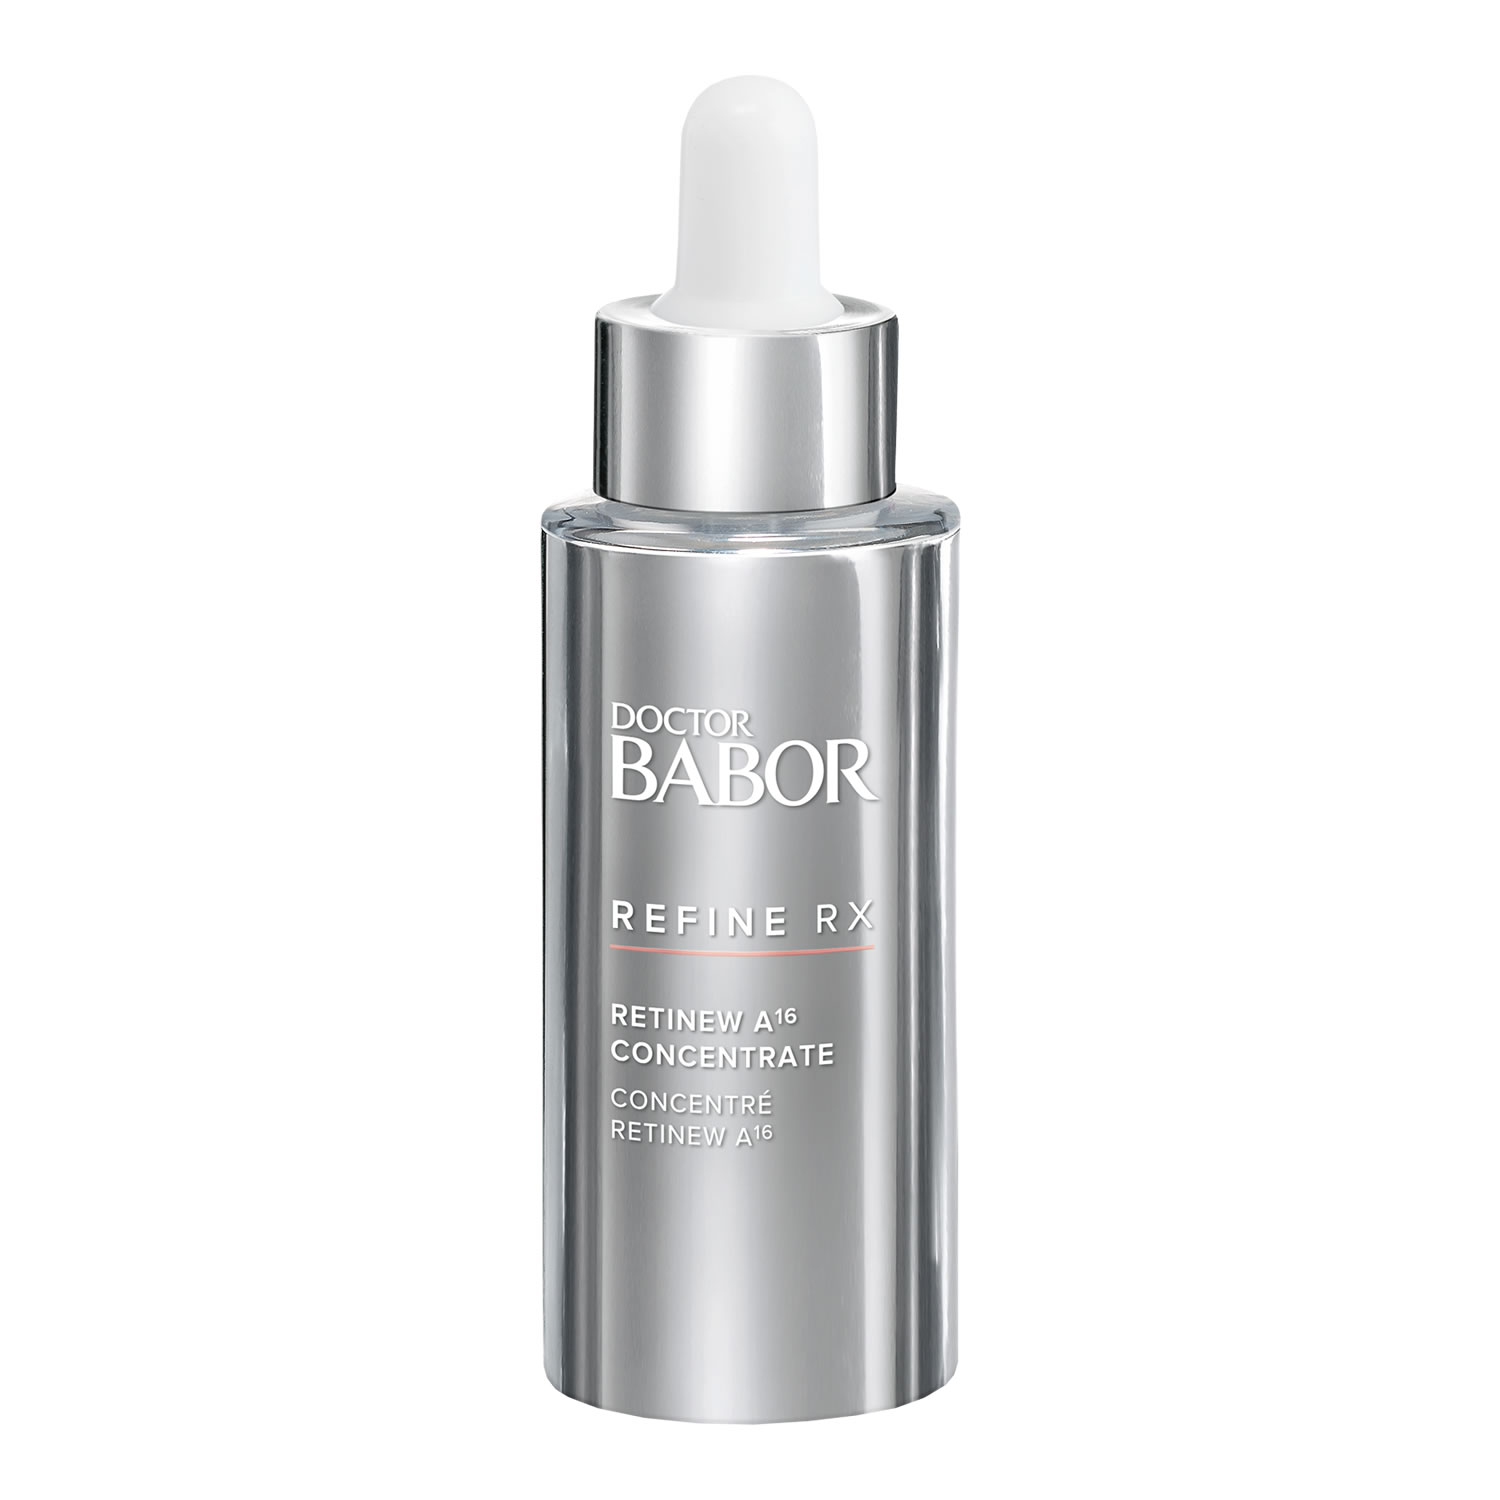 BABOR DOCTOR BABOR DERMA CELLULAR Ultimate A16 Booster Concentrate (30 ml / 1 fl oz)